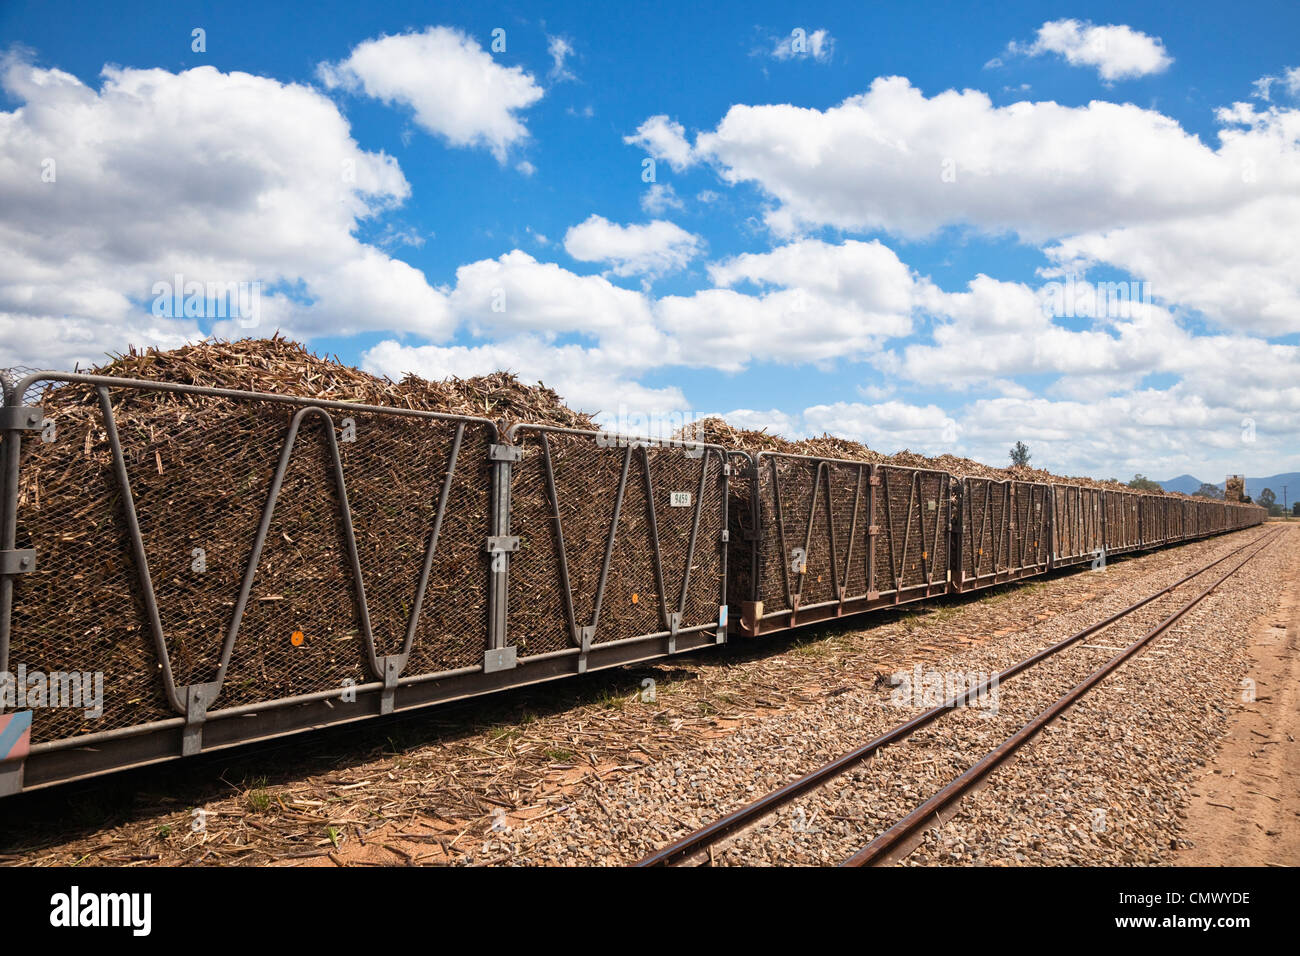 Harvested sugar cane loaded in bins ready to be transported to the sugar mill. Cairns, Queensland, Australia - Stock Image